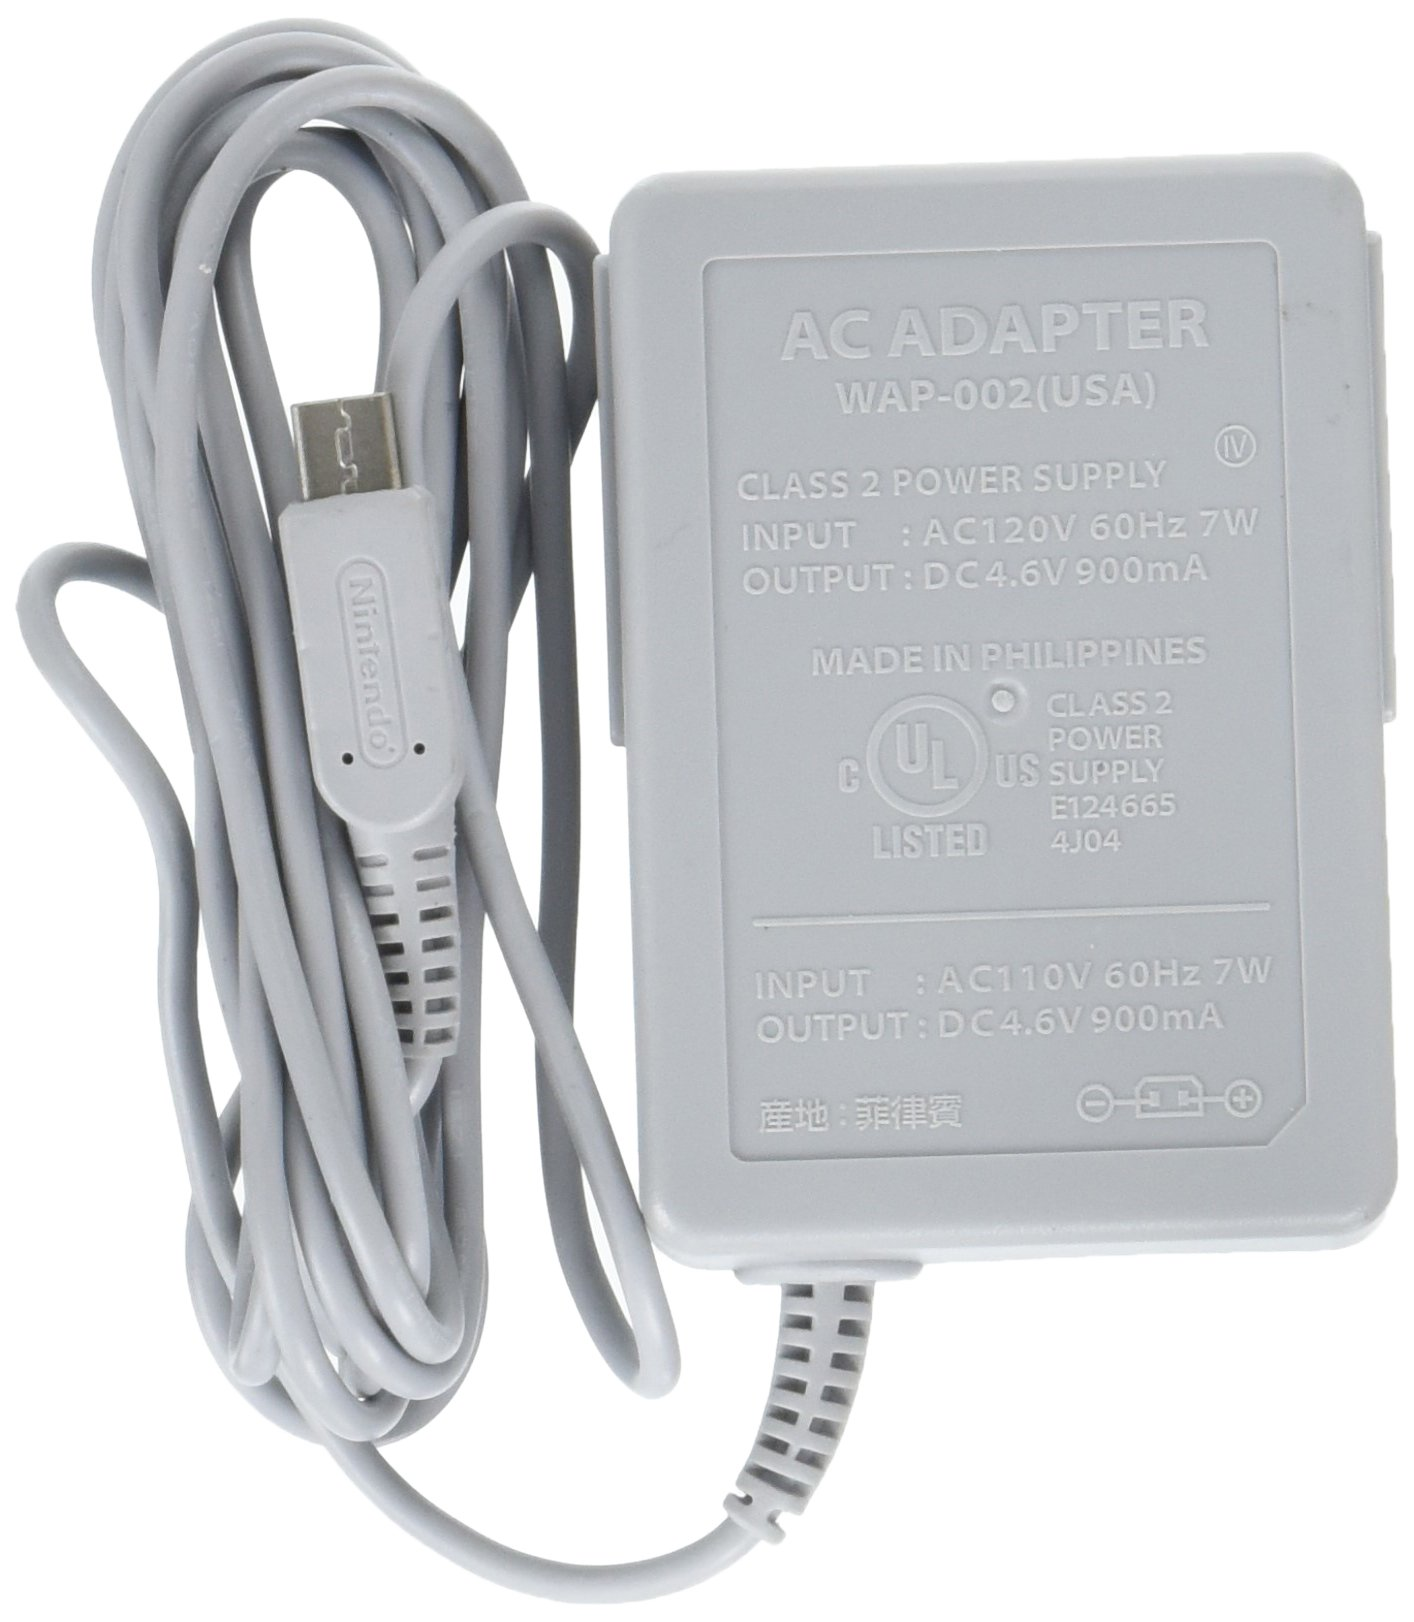 Amazoncom US Plug AC V Gray Power Charger Adapter For - Us zip code nintendo